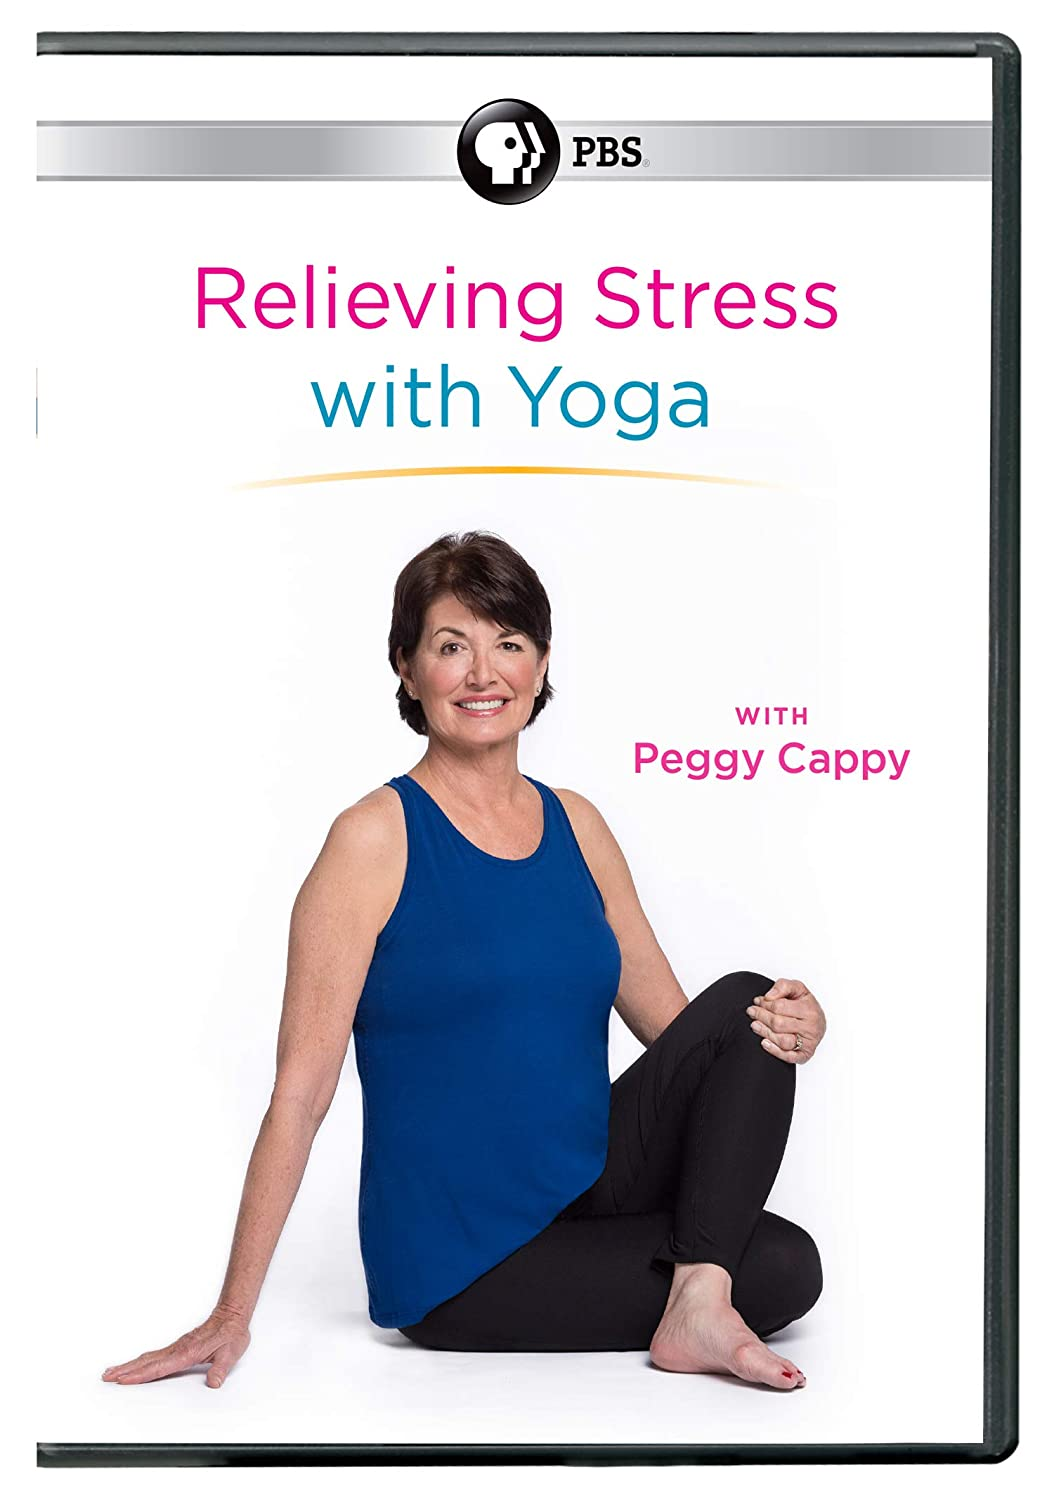 1. Peggy Cappy DVD